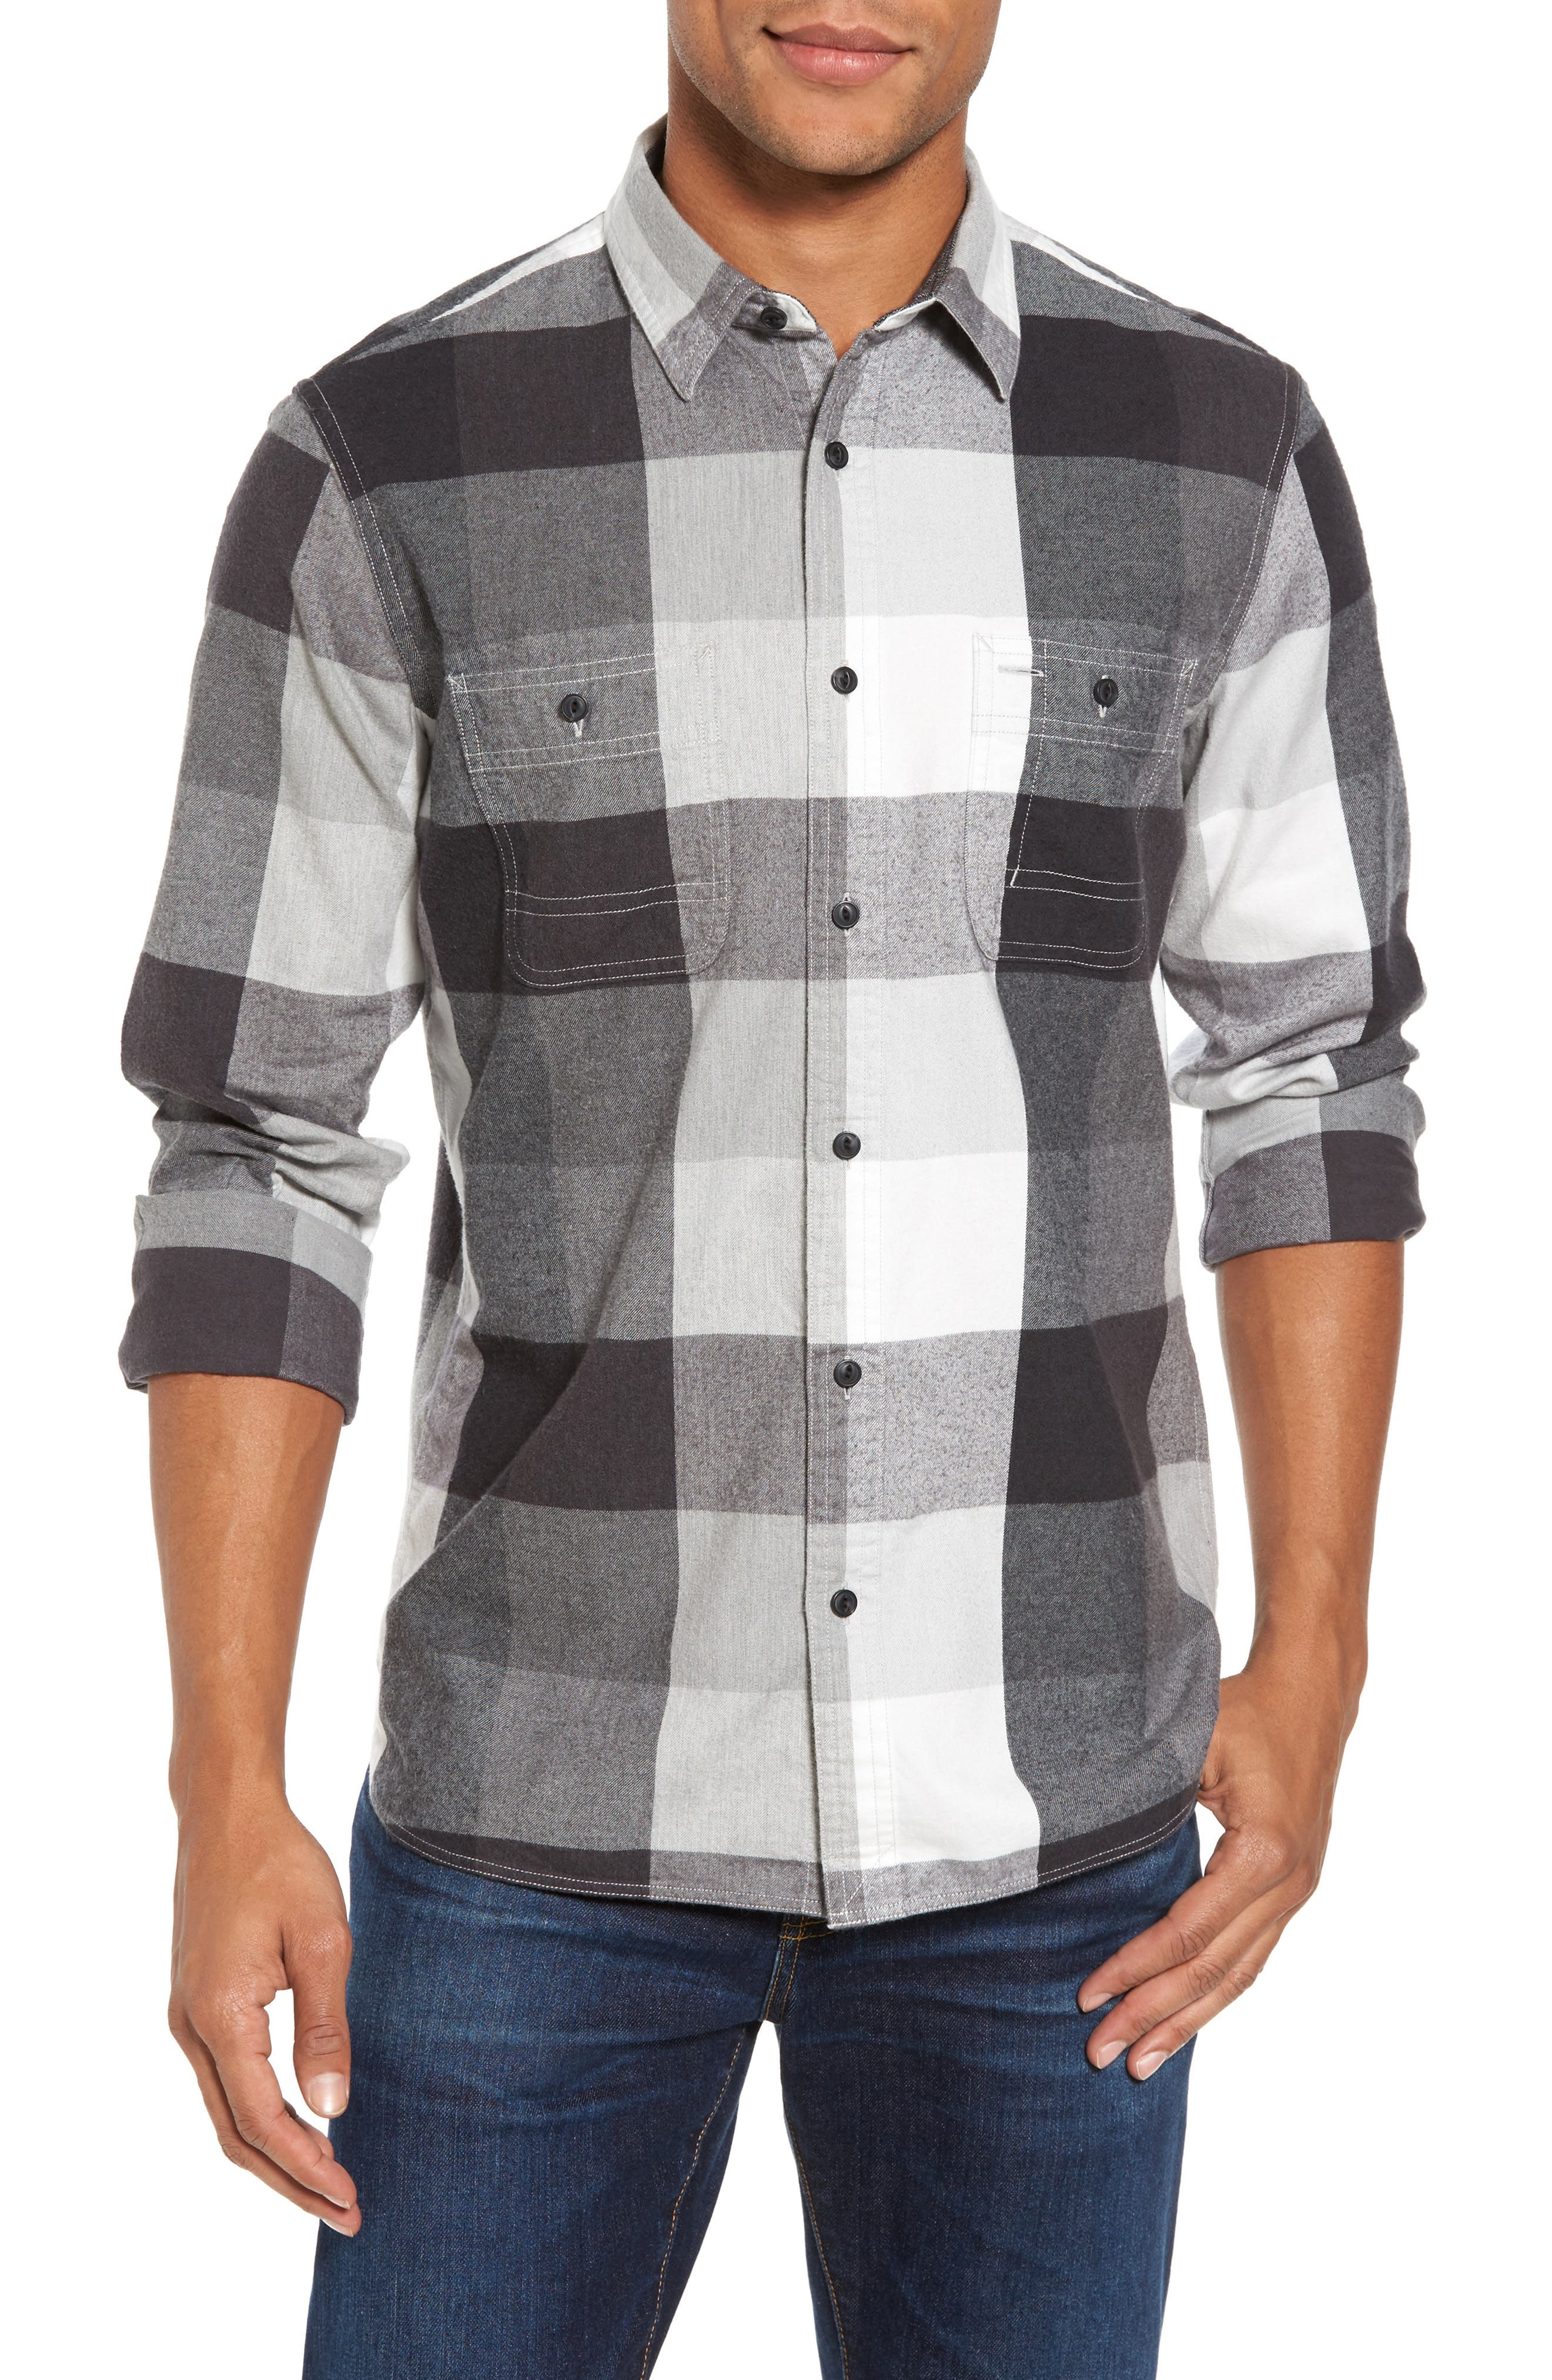 Main Image - Nordstrom Men's Shop Trim Fit Workwear Check Flannel Shirt